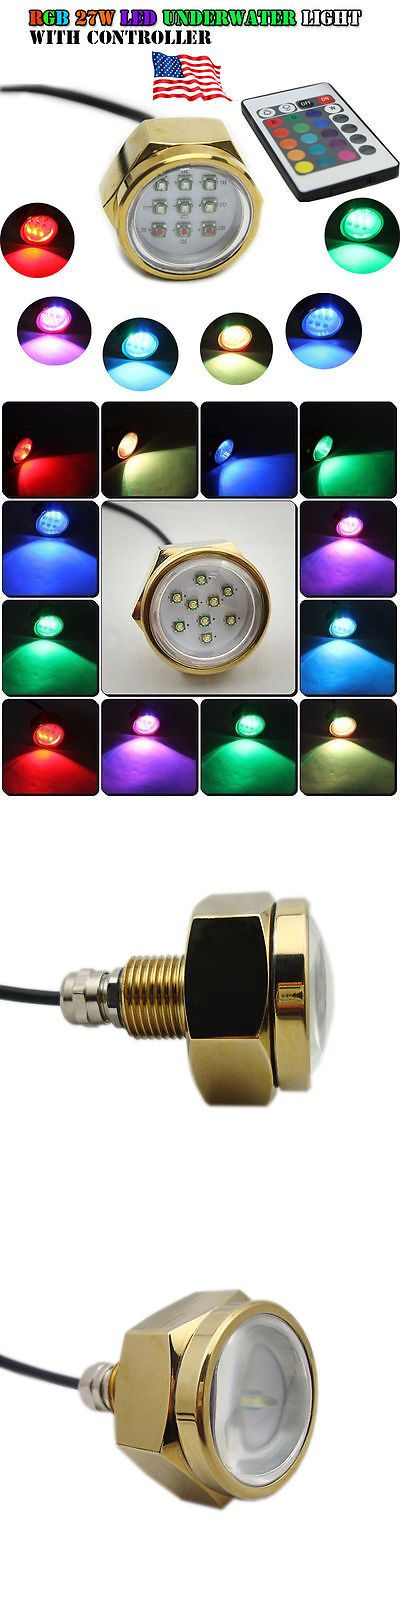 boat parts: Us Stock! 27W Rgb Led Boat Underwater Drain Plug Light Fishing Lamp + Controller -> BUY IT NOW ONLY: $79.99 on eBay!